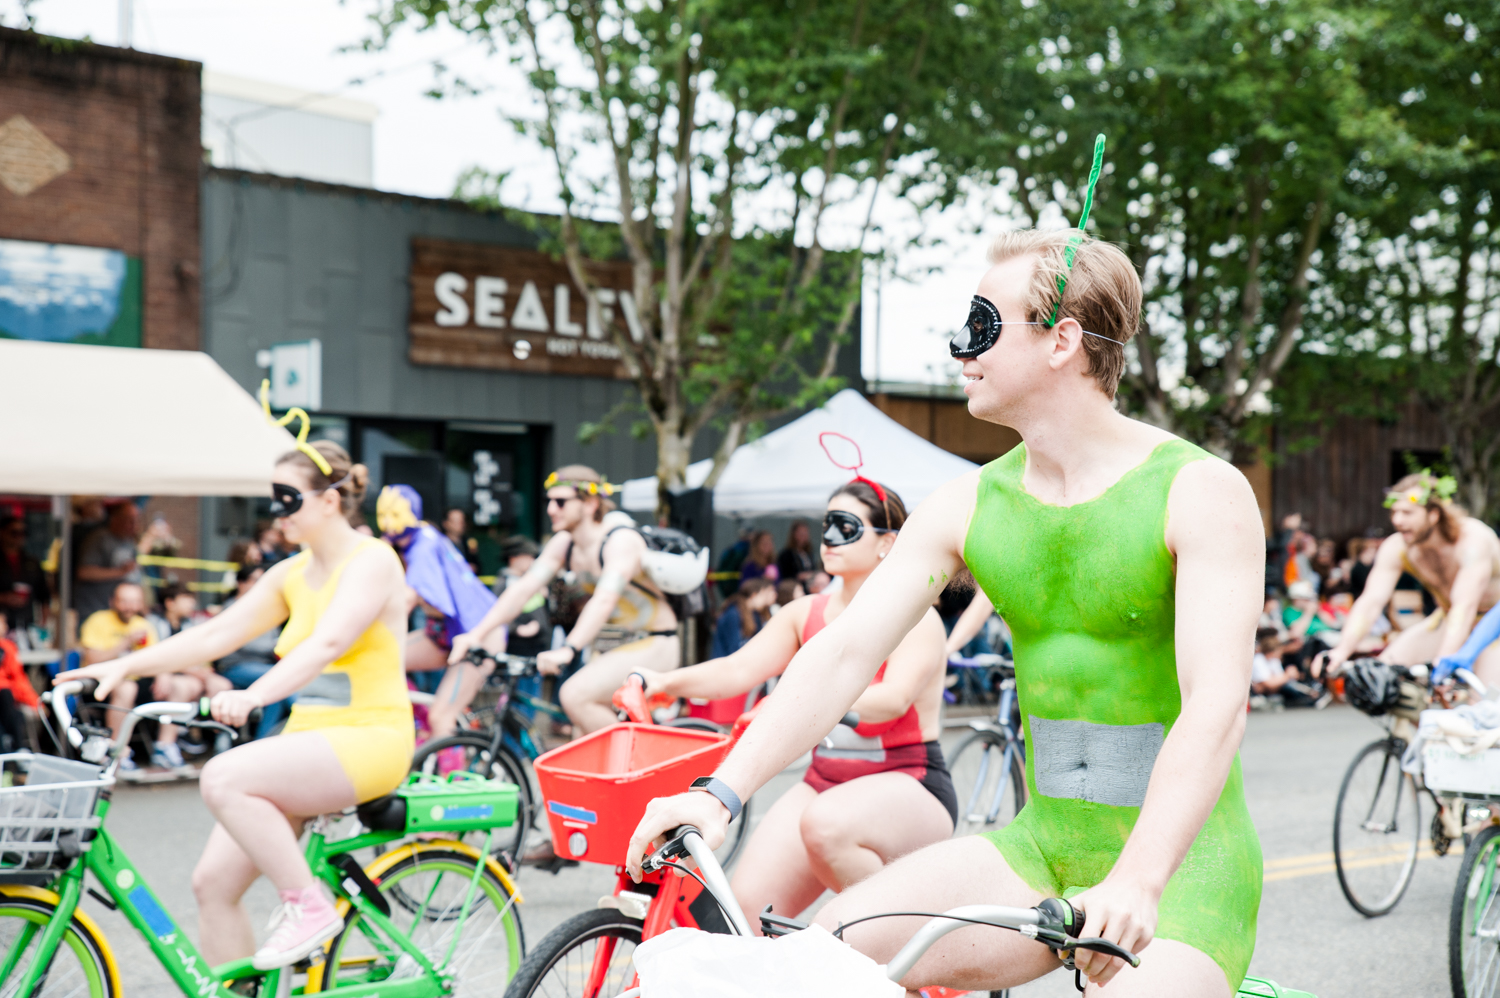 Tens of thousands came down to the Fremont neighborhood in Seattle, WA to watch the annual Solstice Parade. The parade is part of the Fremont Fair and celebrates the Summer Solstice. Hundreds of naked bike riders painted in unique ways unofficially start the parade each year, followed by musicians, dancers, clowns and other quirky characters. (Elizabeth Crook / Seattle Refined)